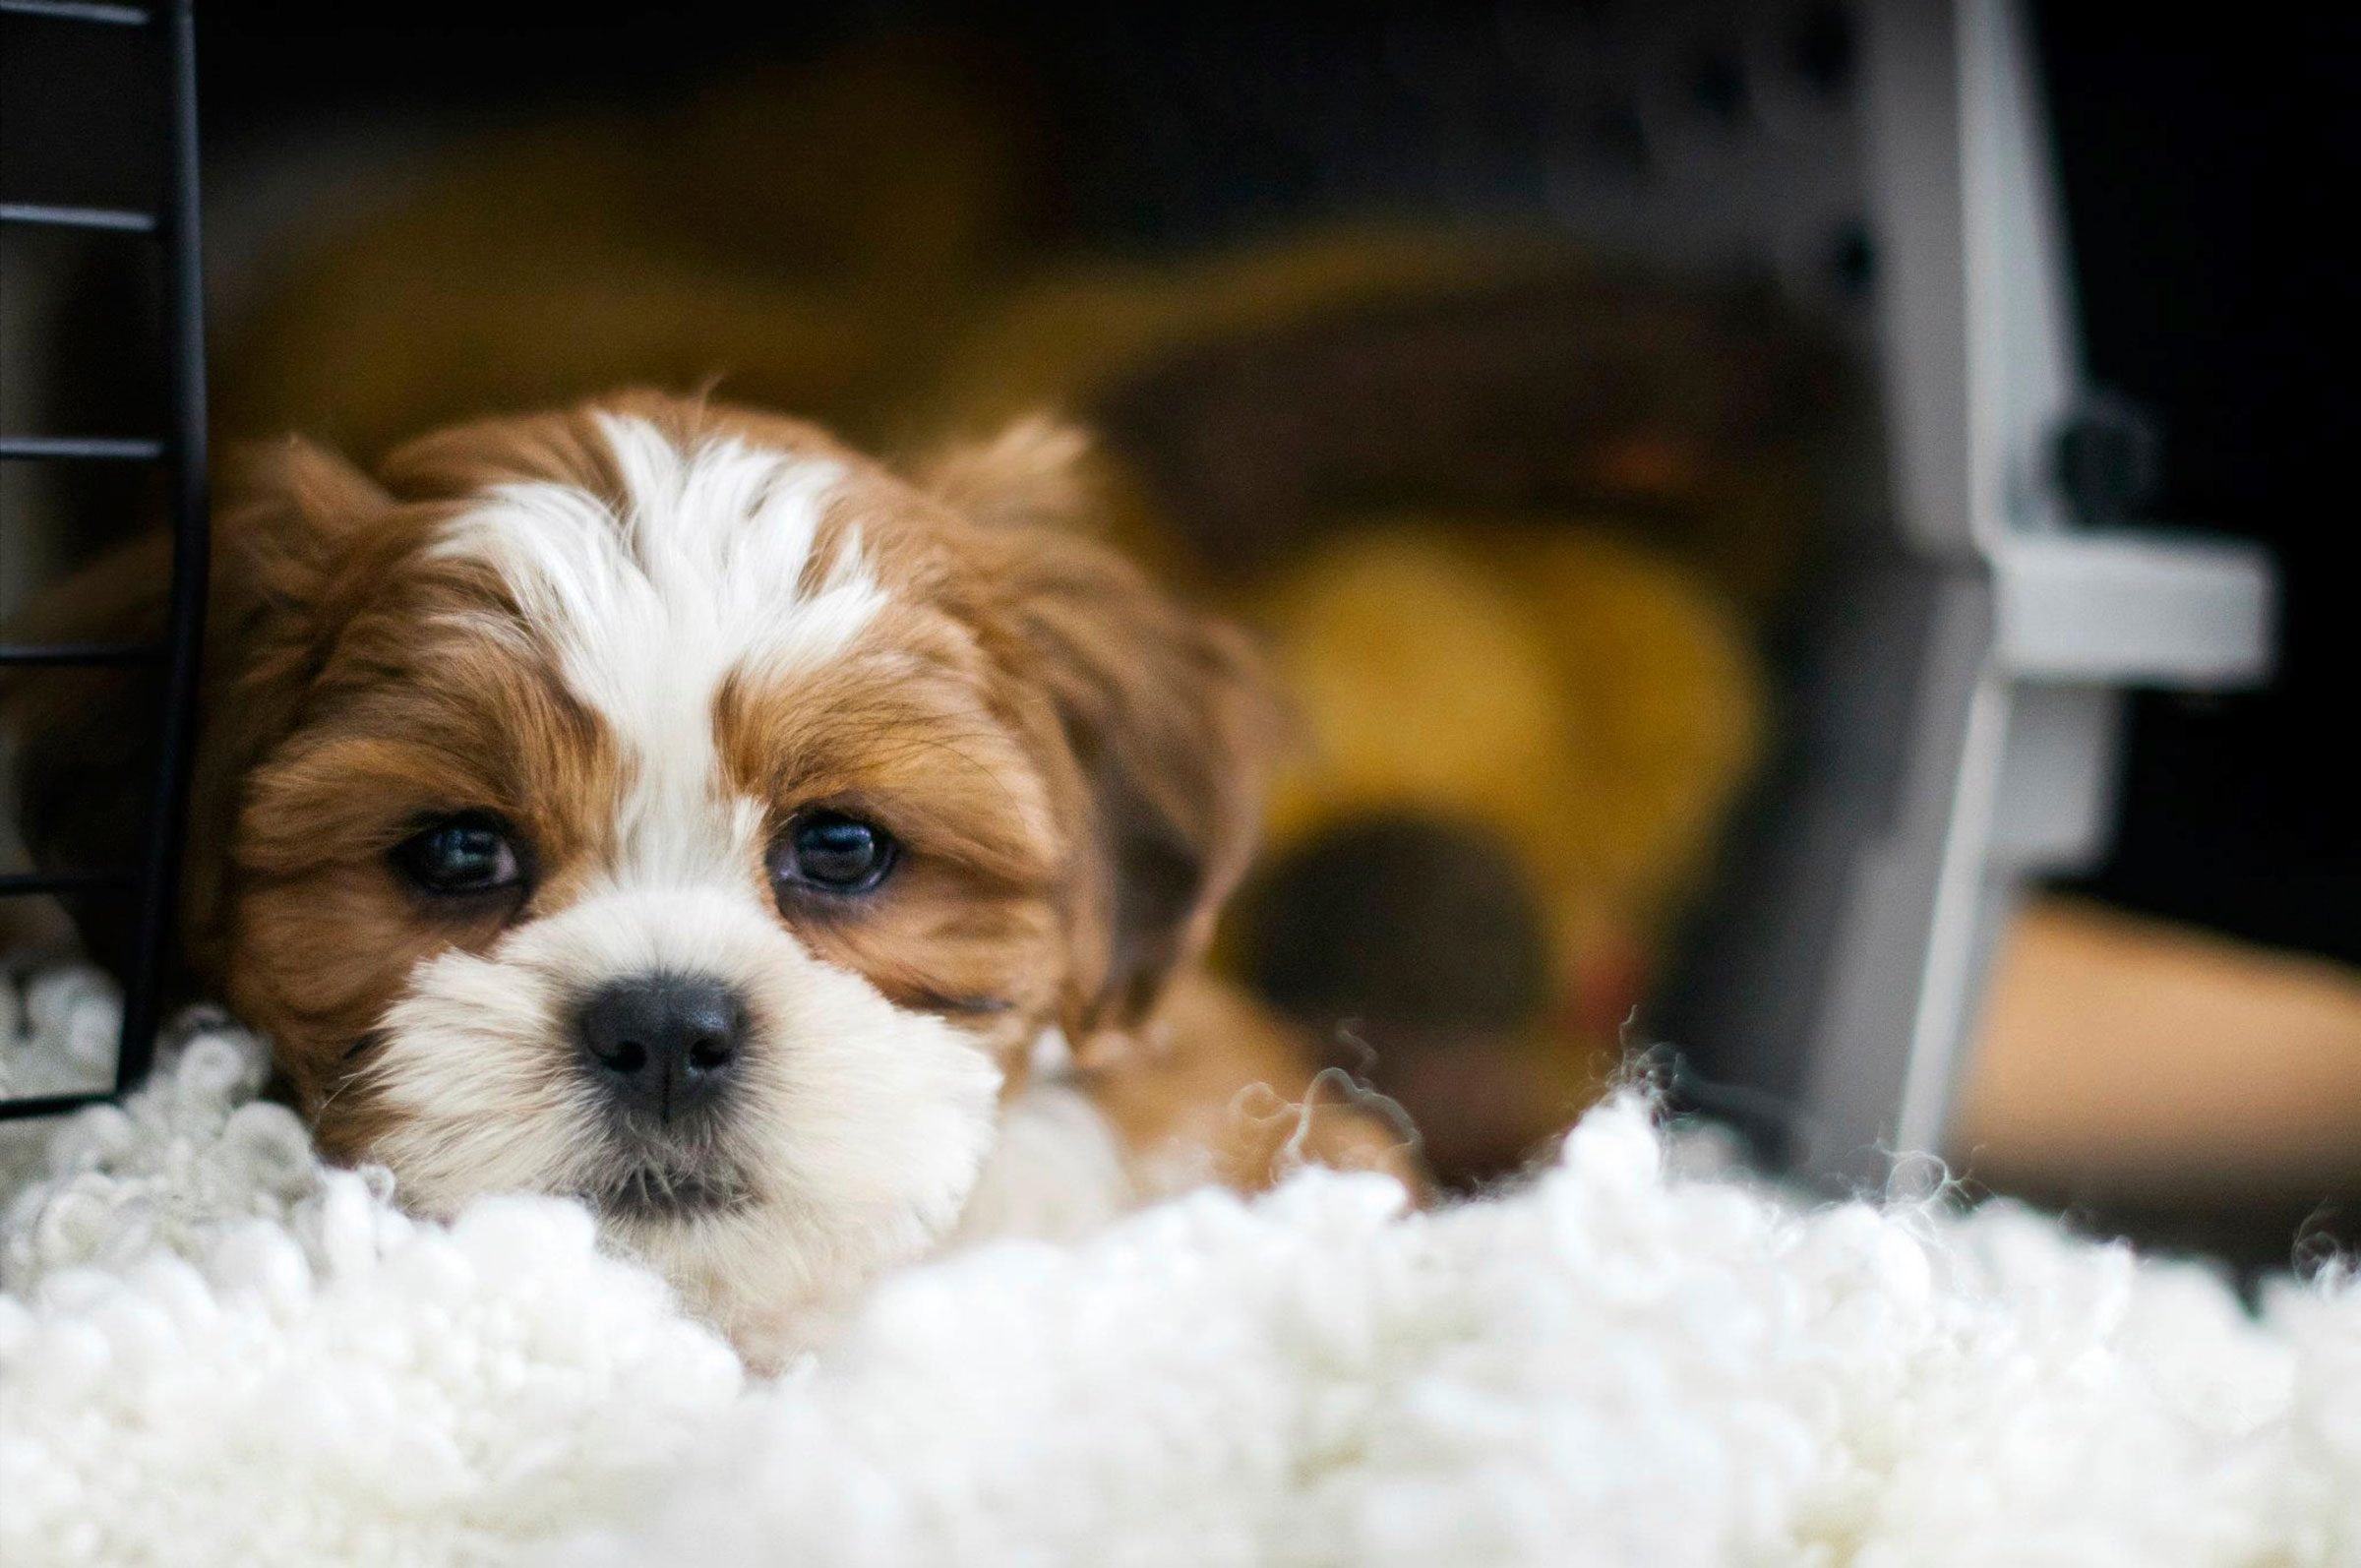 how to train your puppy Learn all about training your pet, including puppy training, dog obedience training and cat training and behavior.